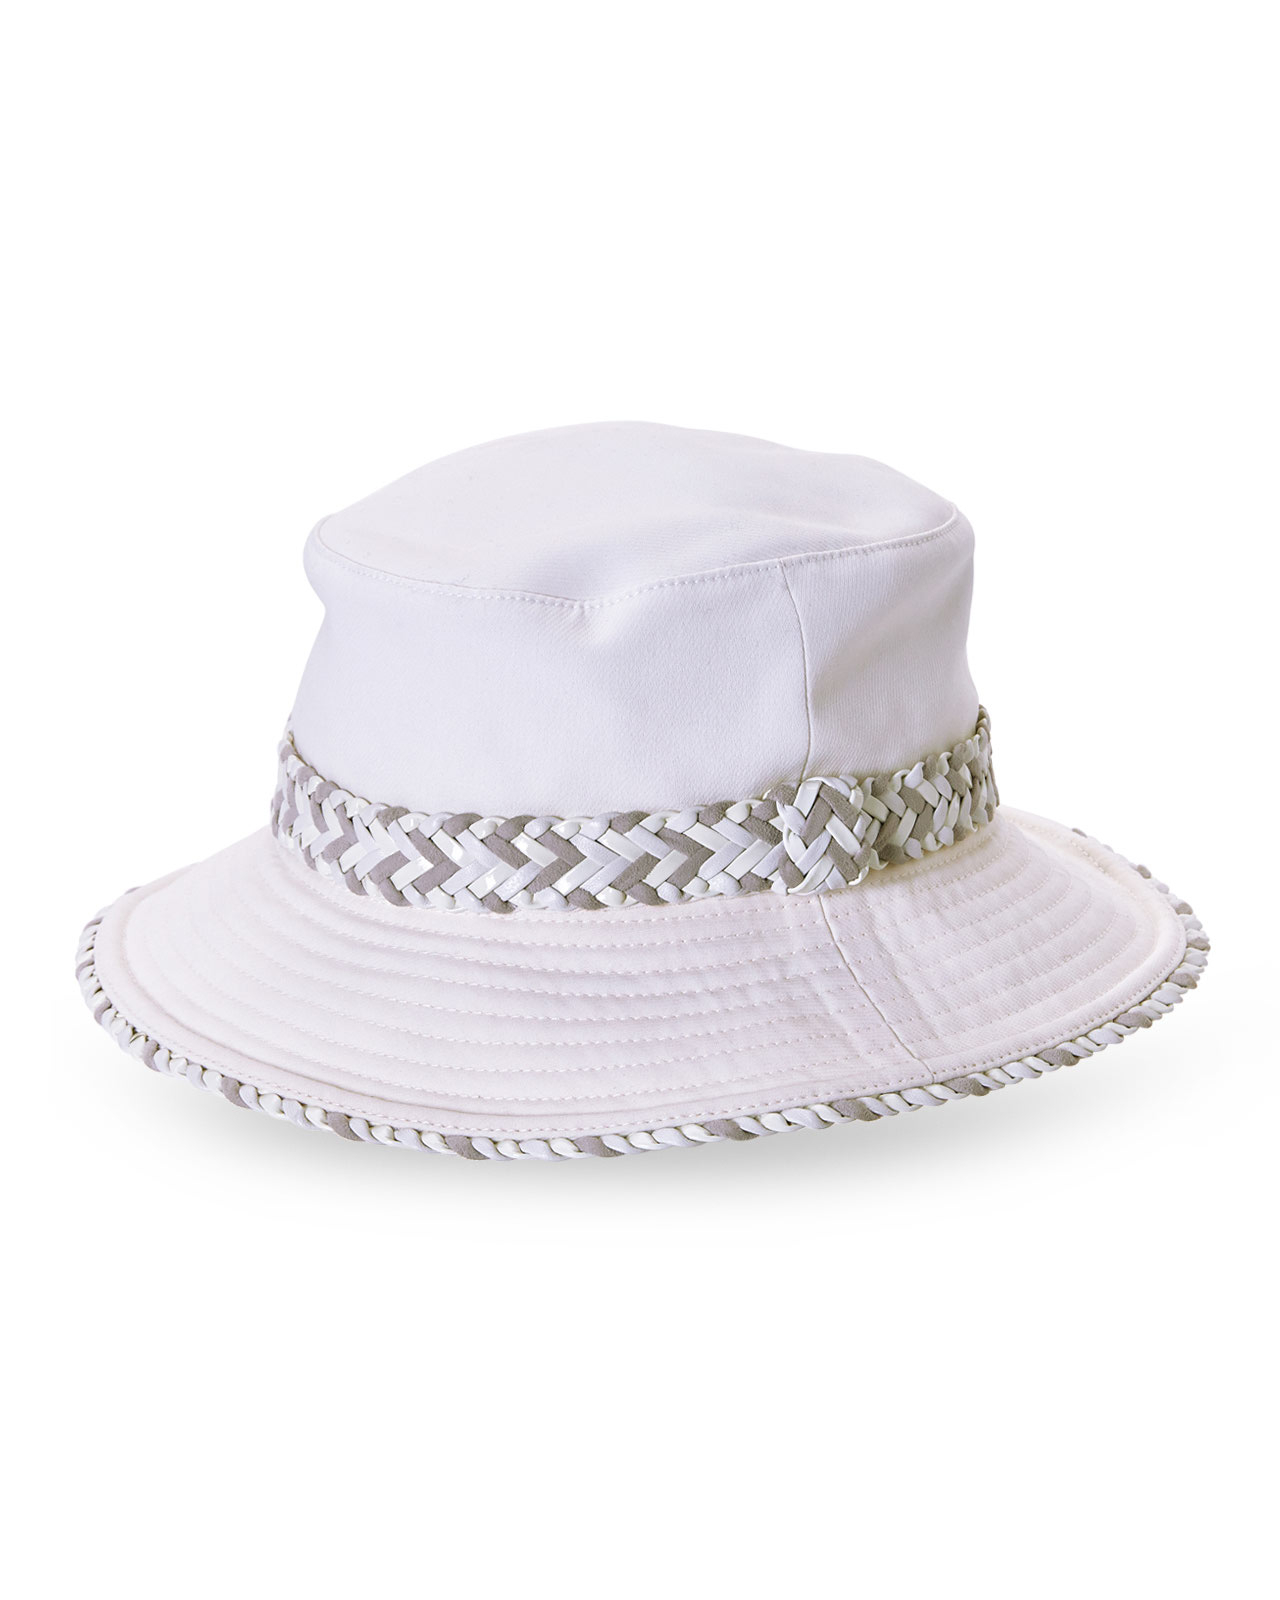 cee4e775ce6 Lyst - Hermès HermãˆS White Braided Band Sun Hat in White for Men